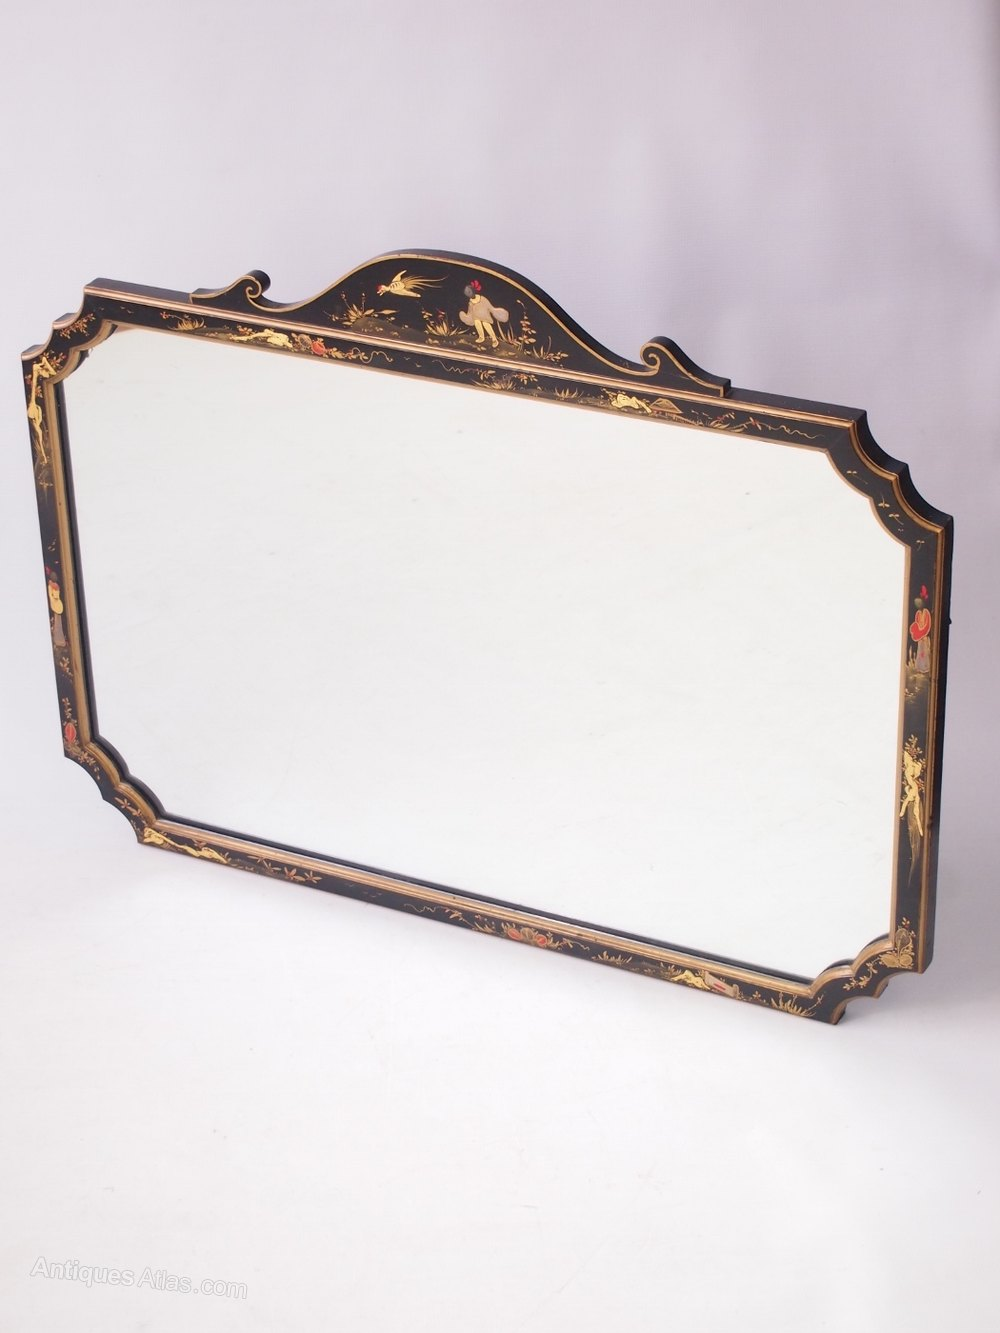 Antiques atlas large chinoiserie mirror or overmantle mirror for Overmantle mirror